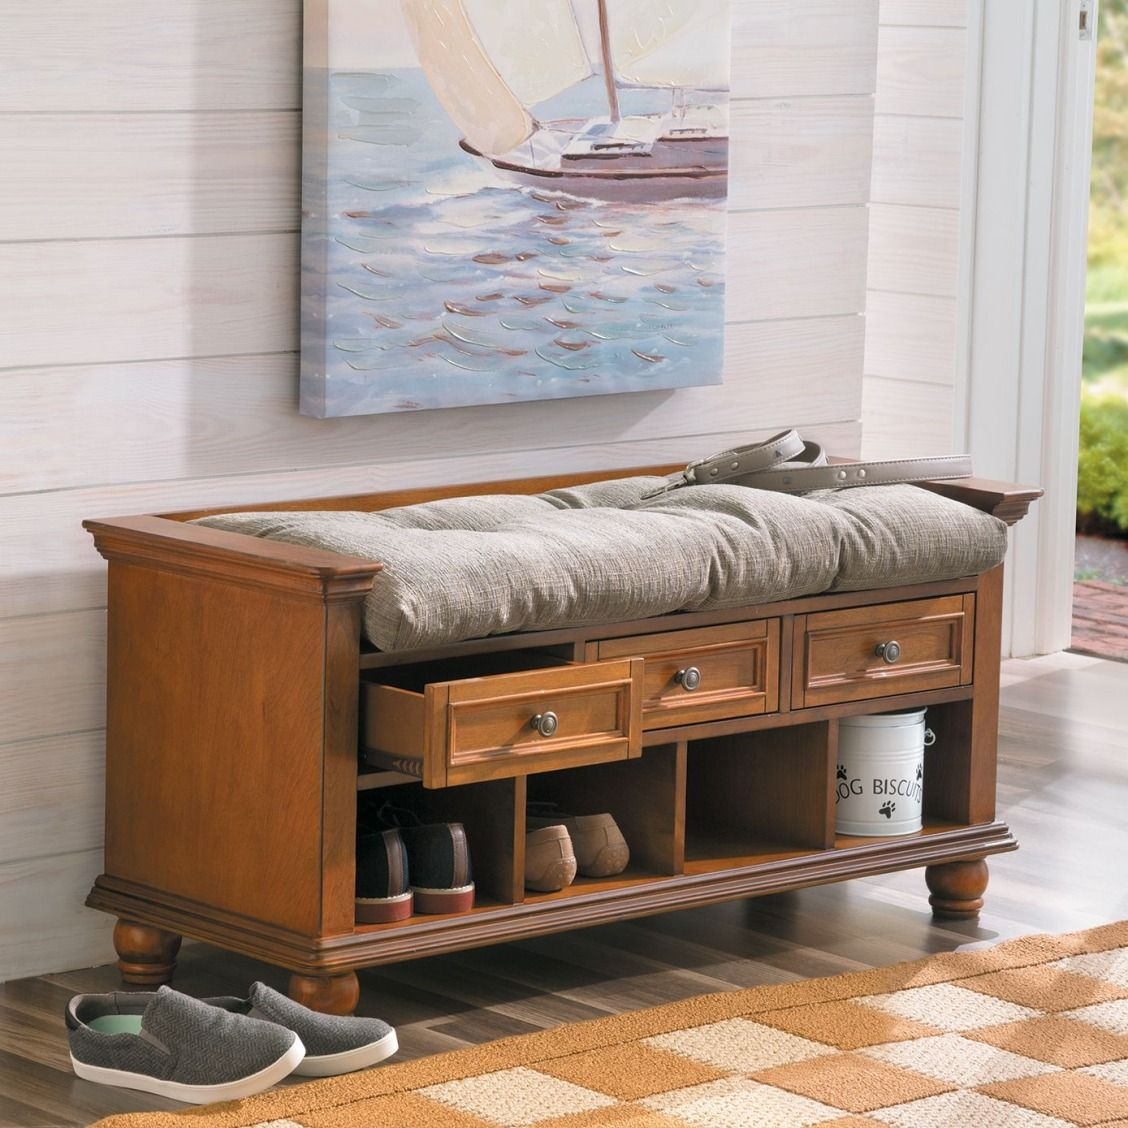 Classic Entryway Storage Bench Has Cubbies For Shoes